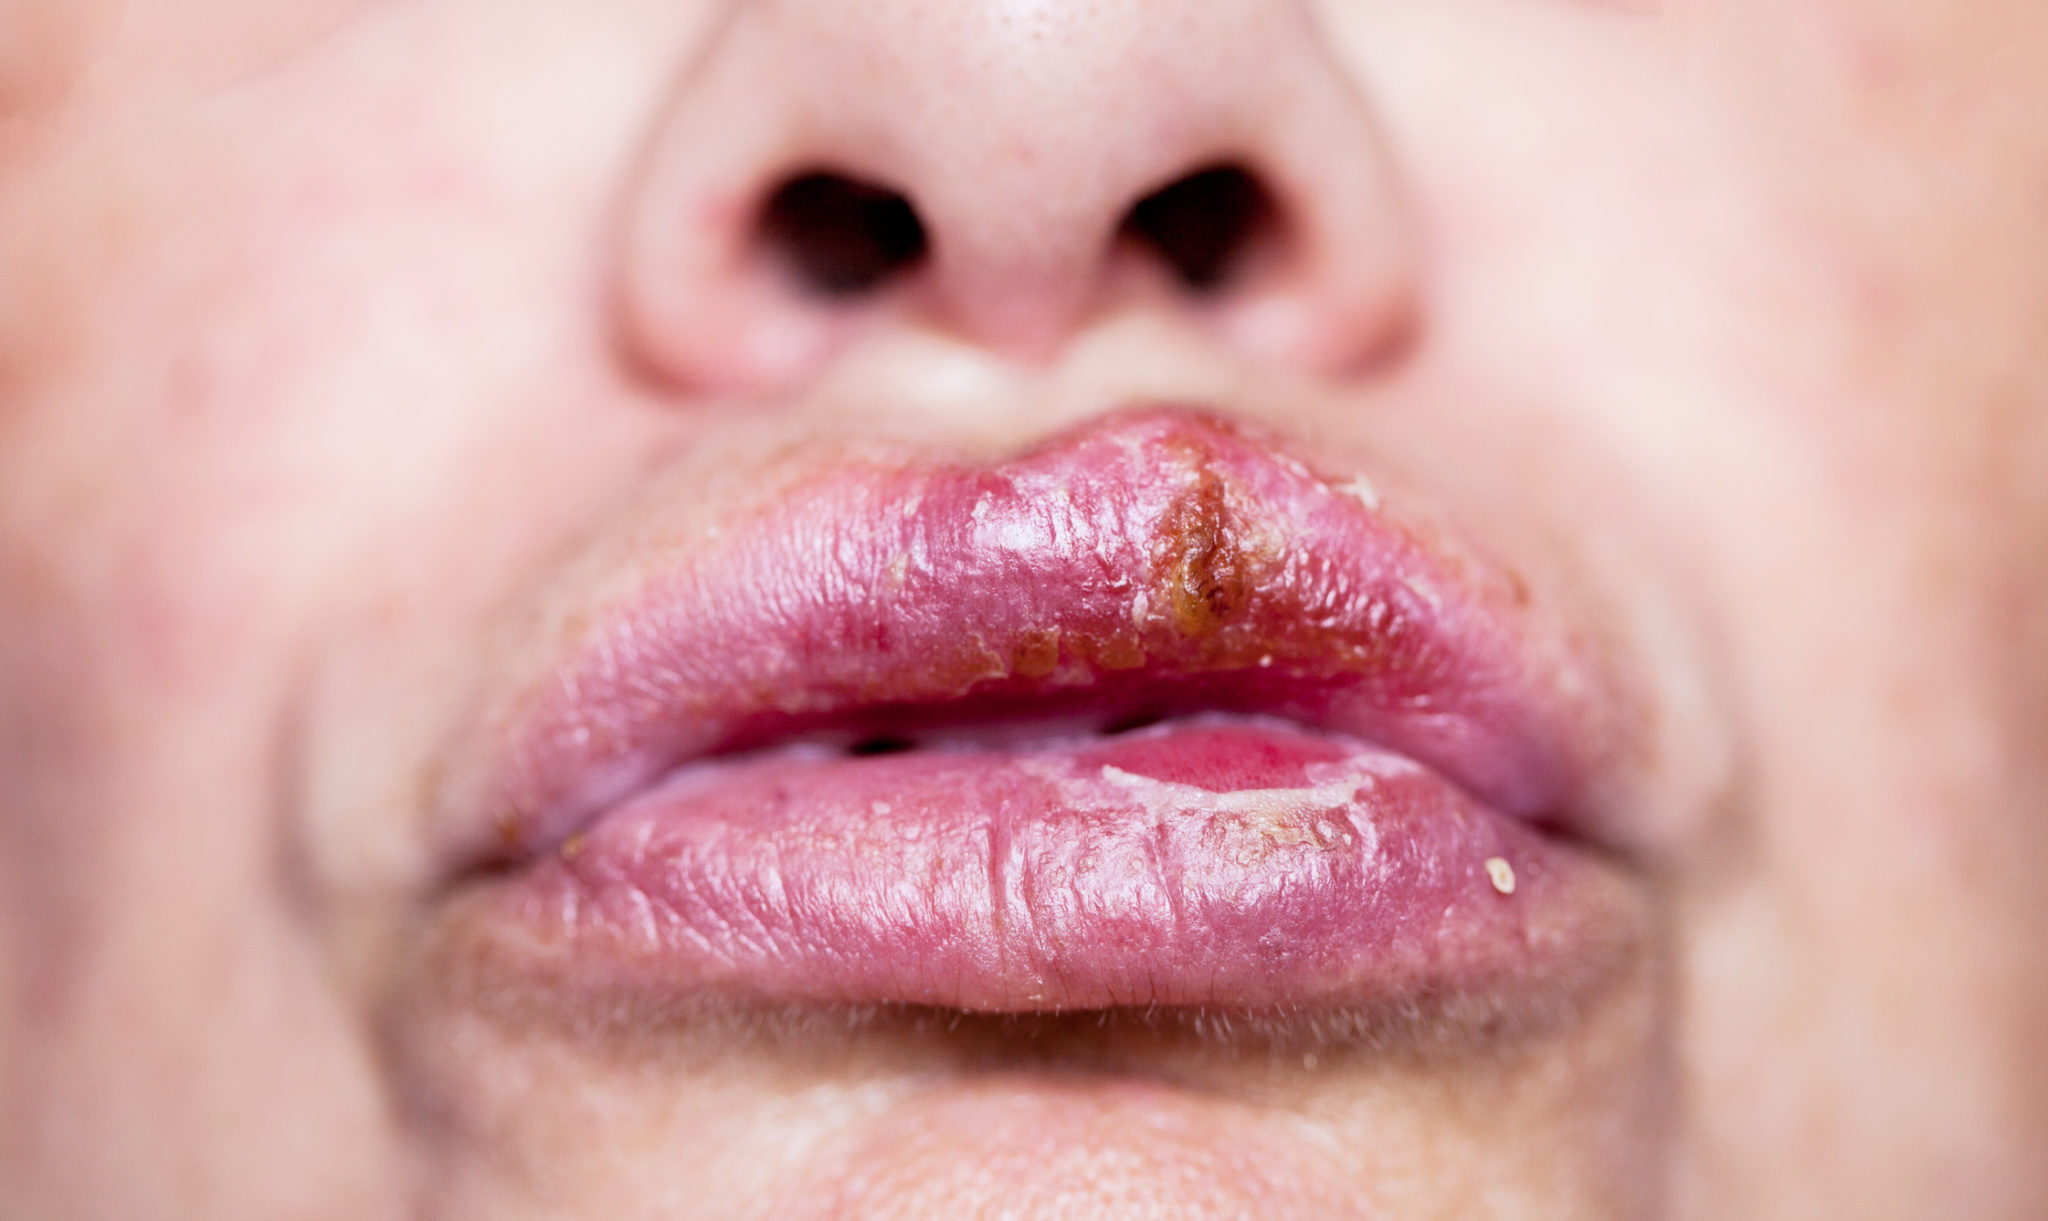 Mouth Sores: Why You Should Be Concerned 7